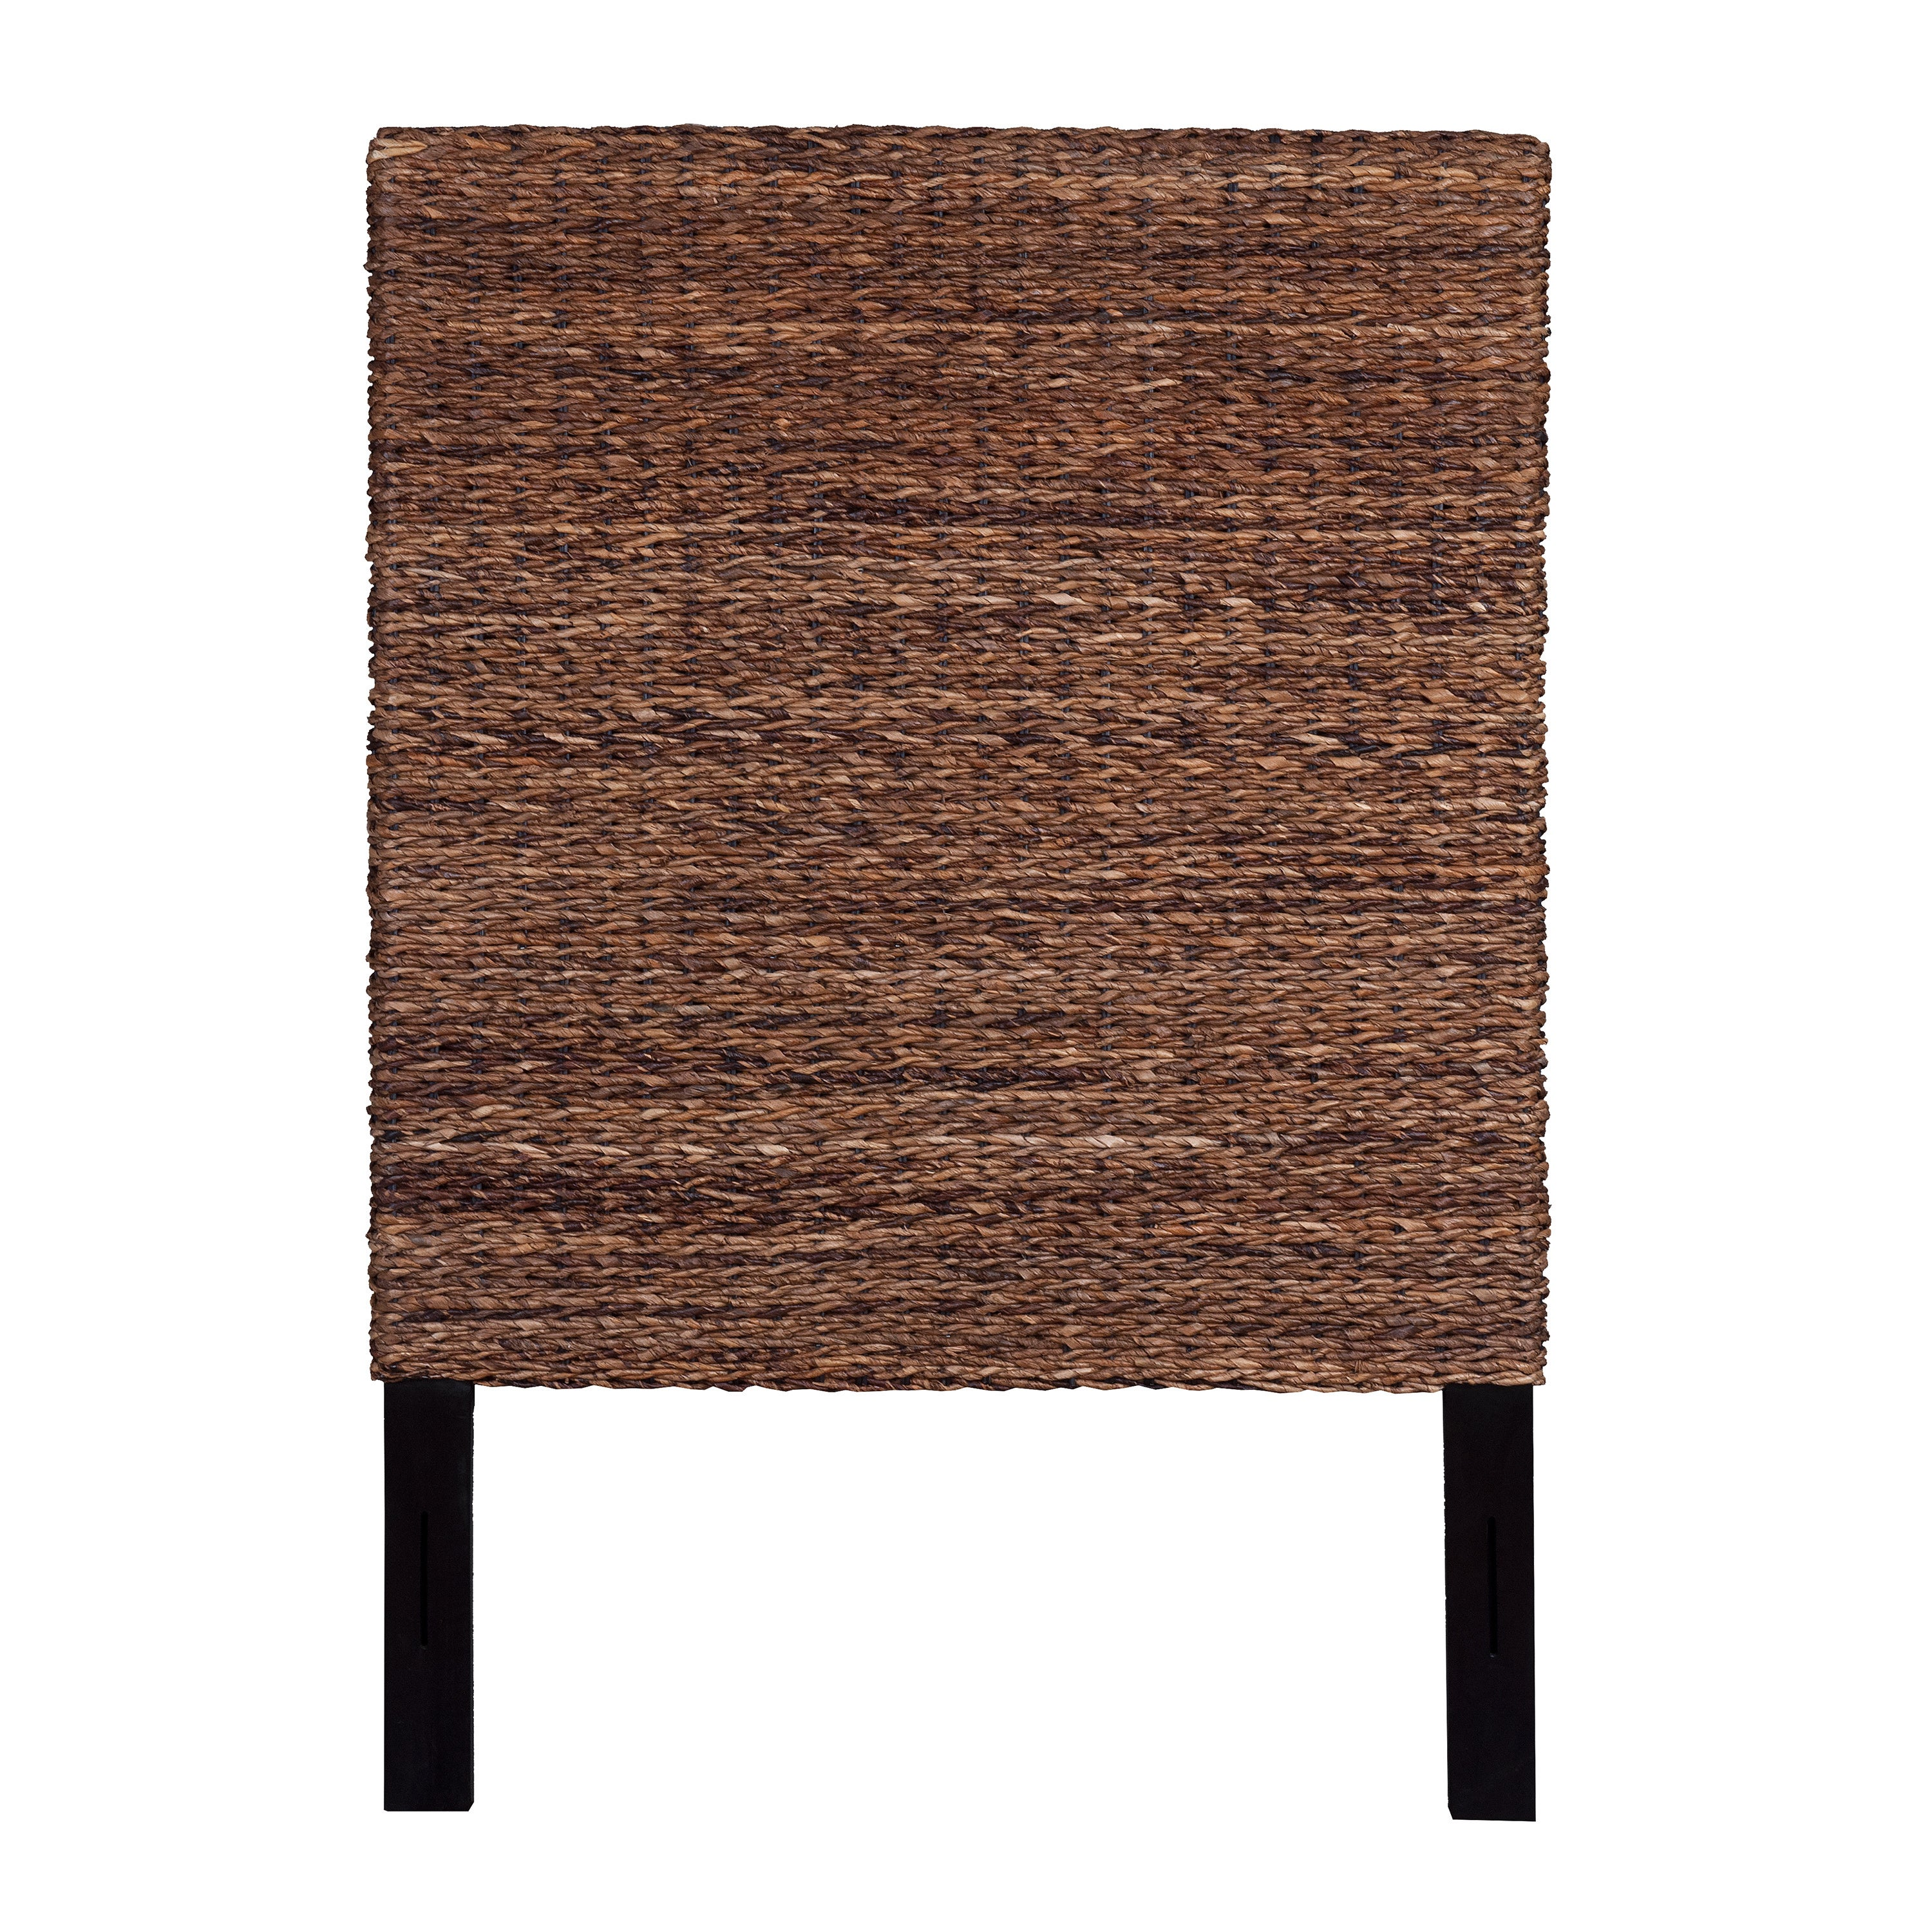 Shop East At Main s Meticulously Woven Tan Abaca Weave Headboard